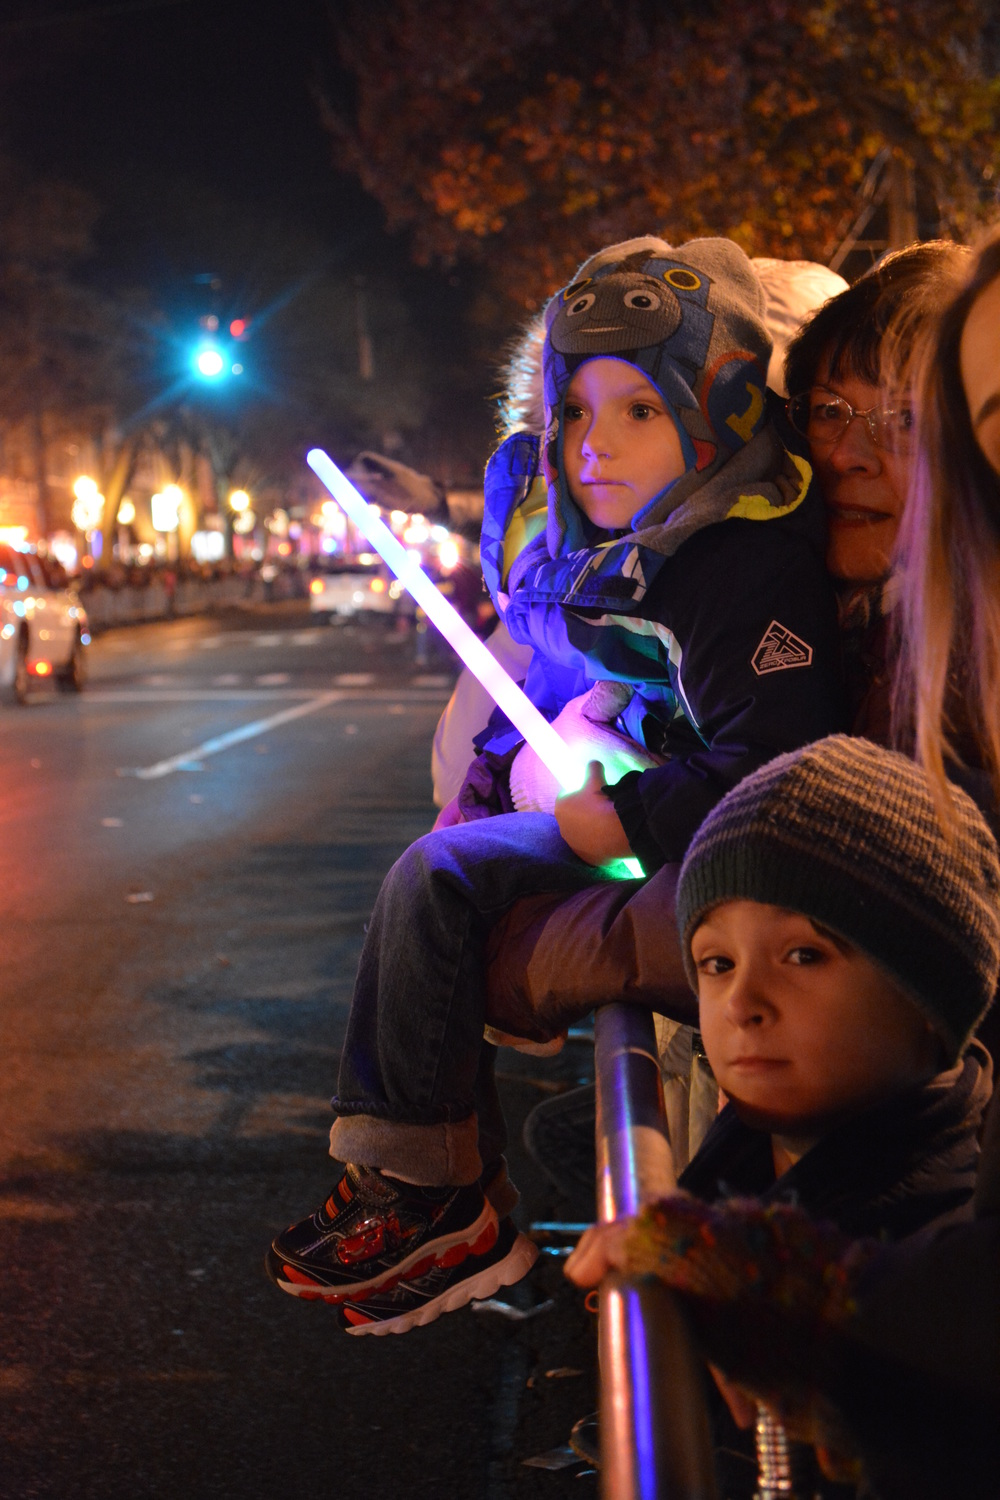 Children watched intently as floats came down Main Street.